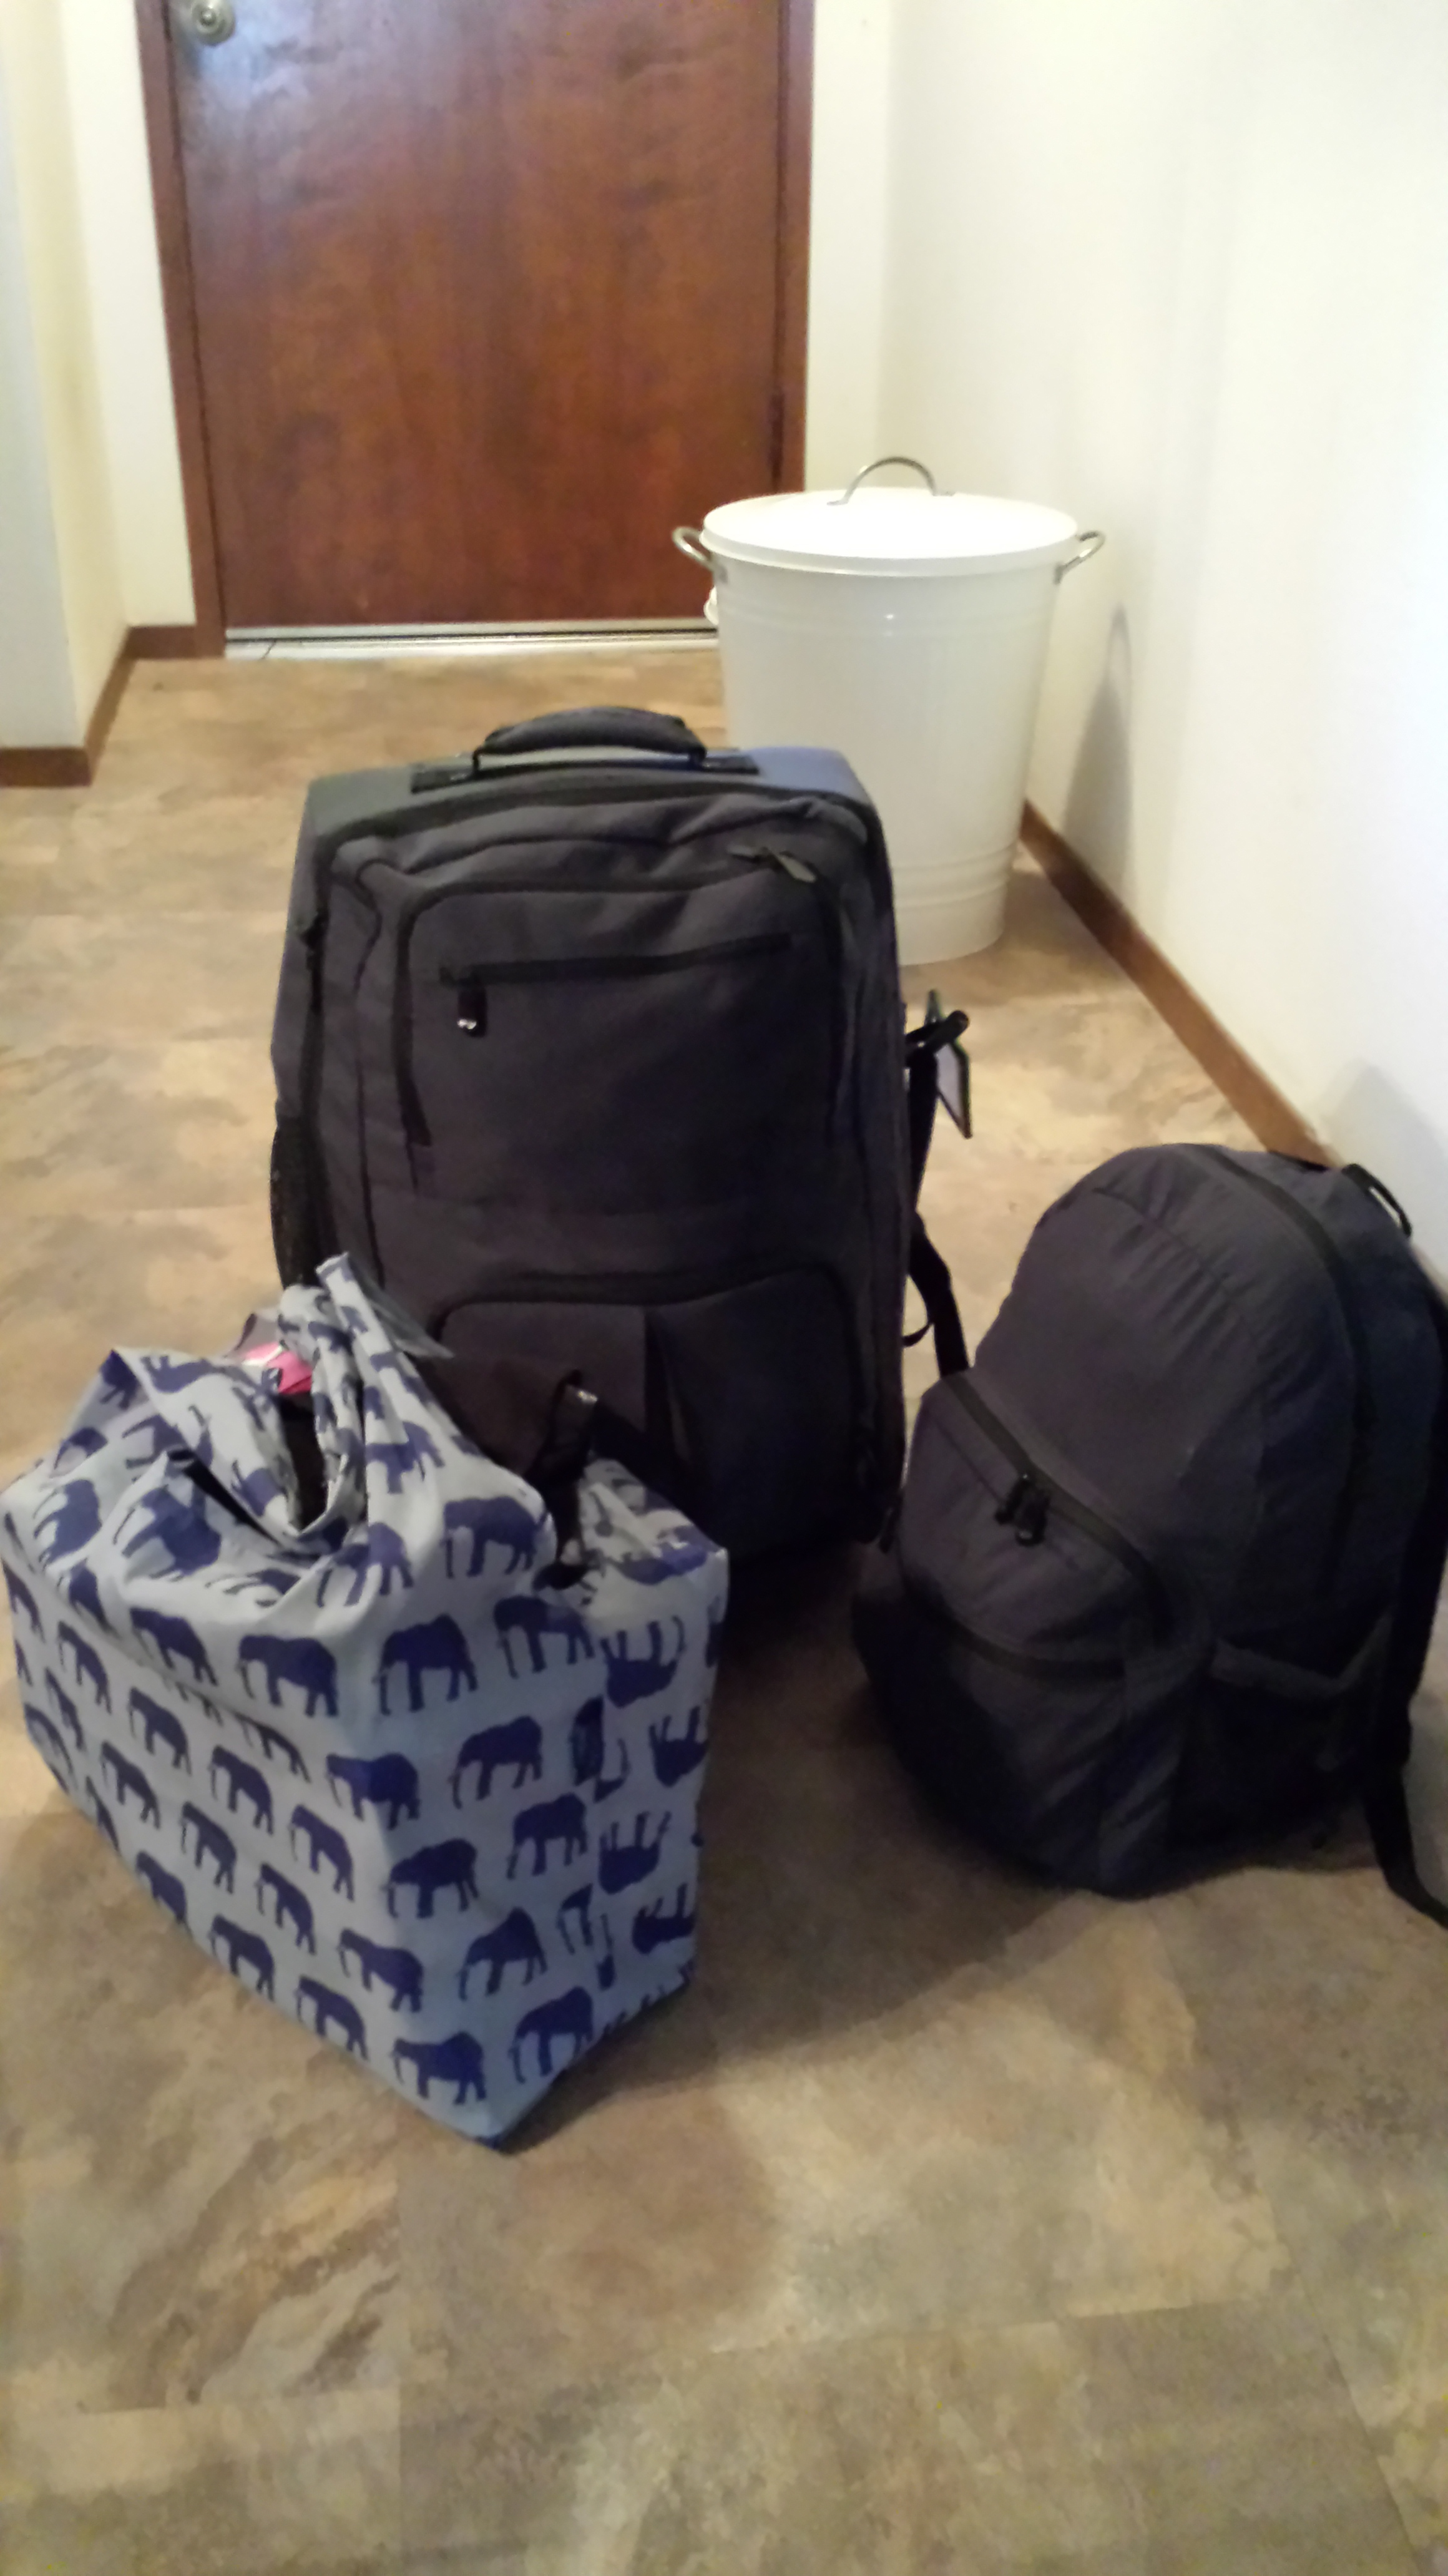 My bags are packed, I'm ready to go. One month with Rick Steve's luggage. The elephant bag will fold back up and be stowed away once my Trek bike ride is done.